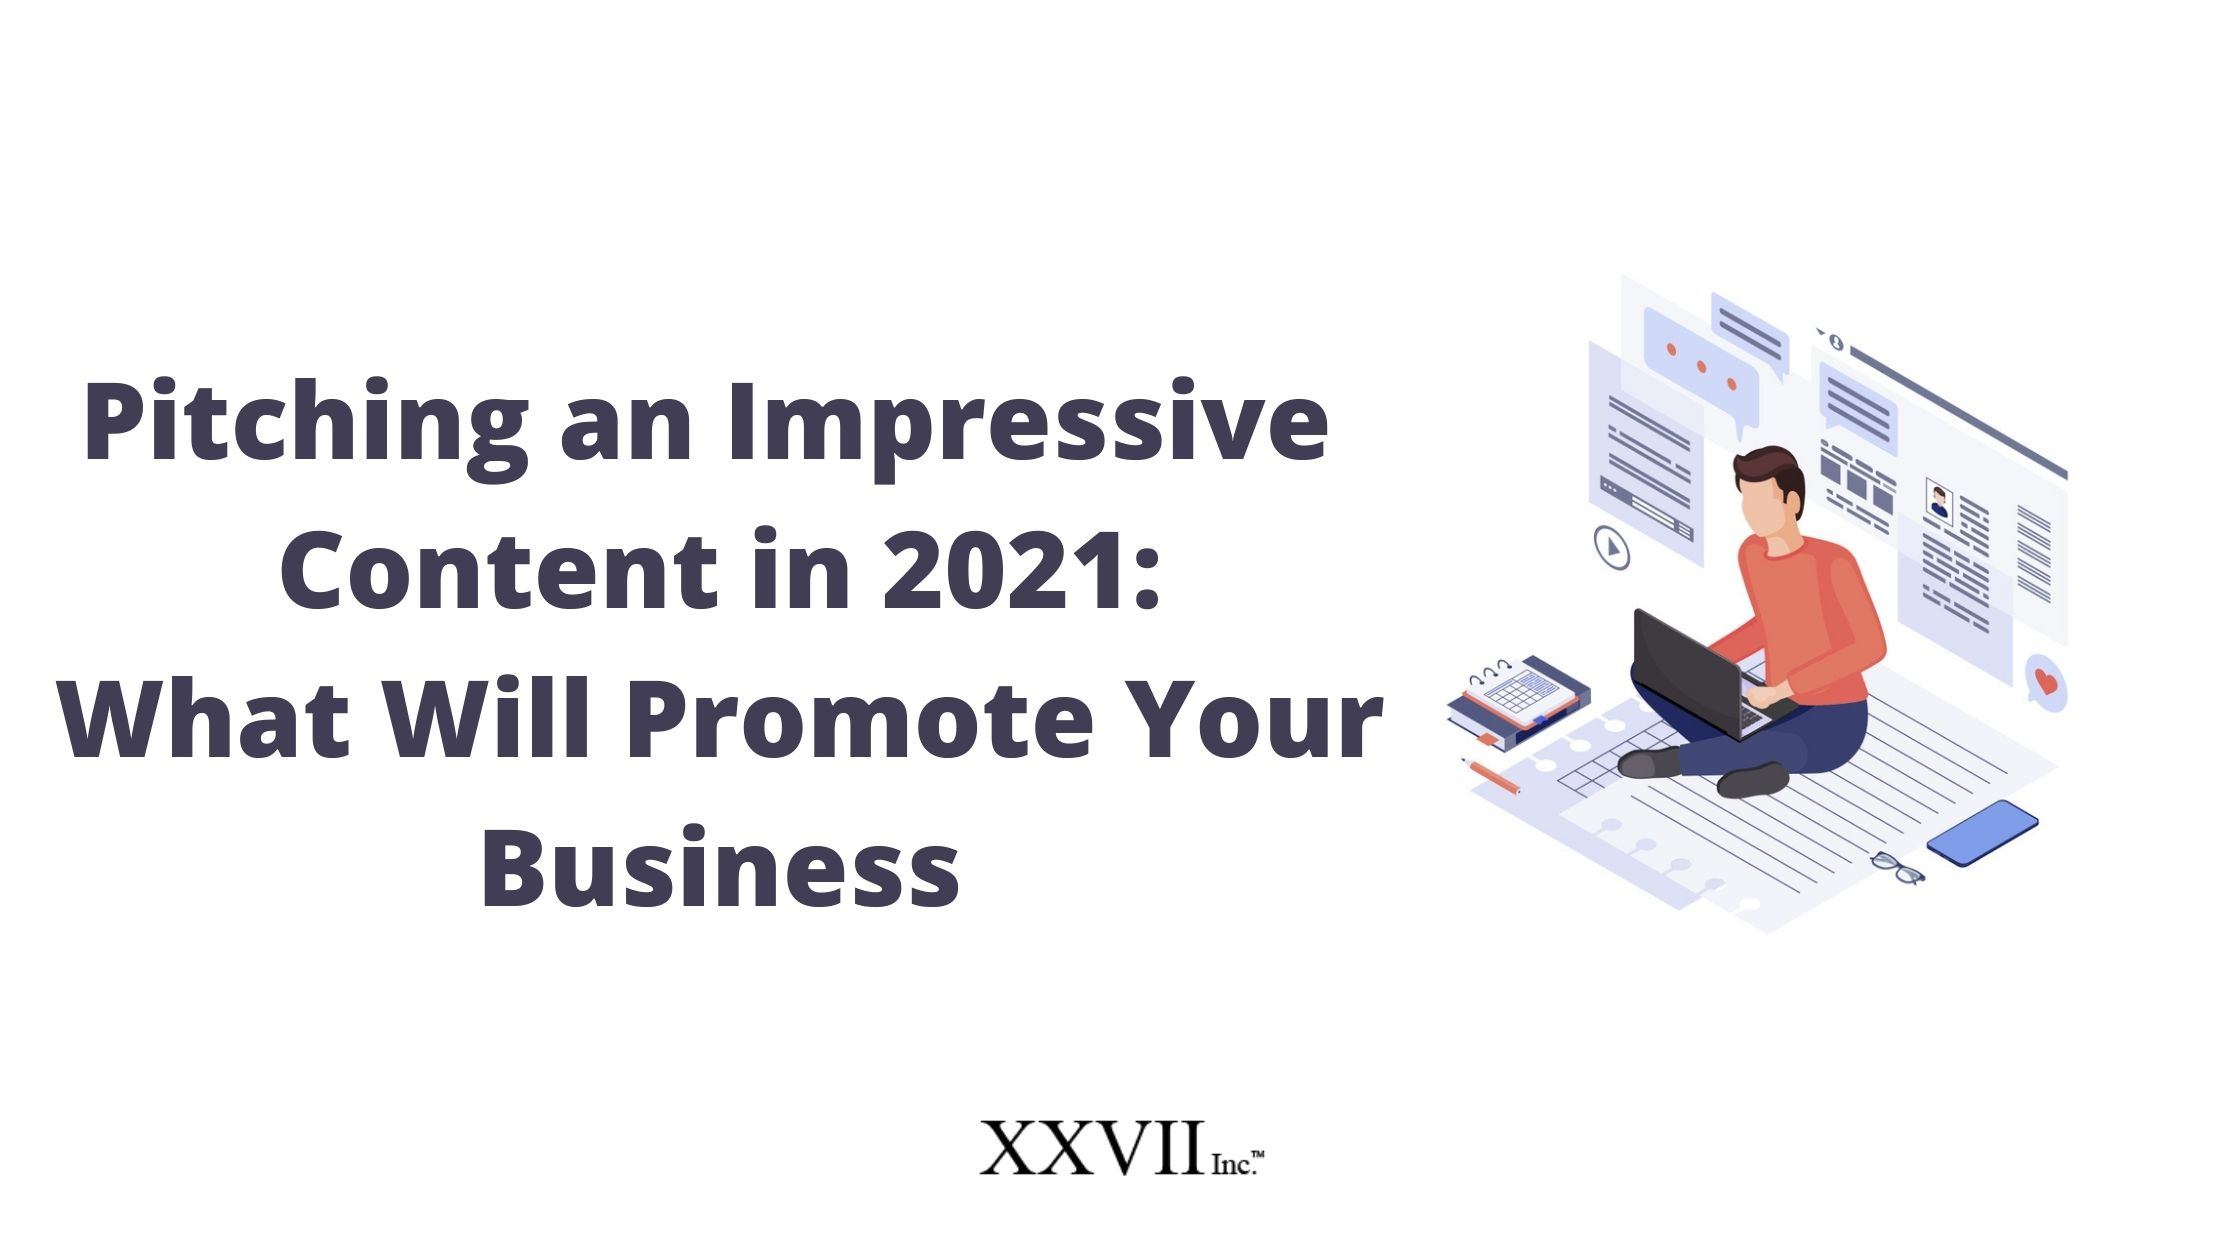 Pitching an Impressive Content in 2021: What Will Promote Your Business